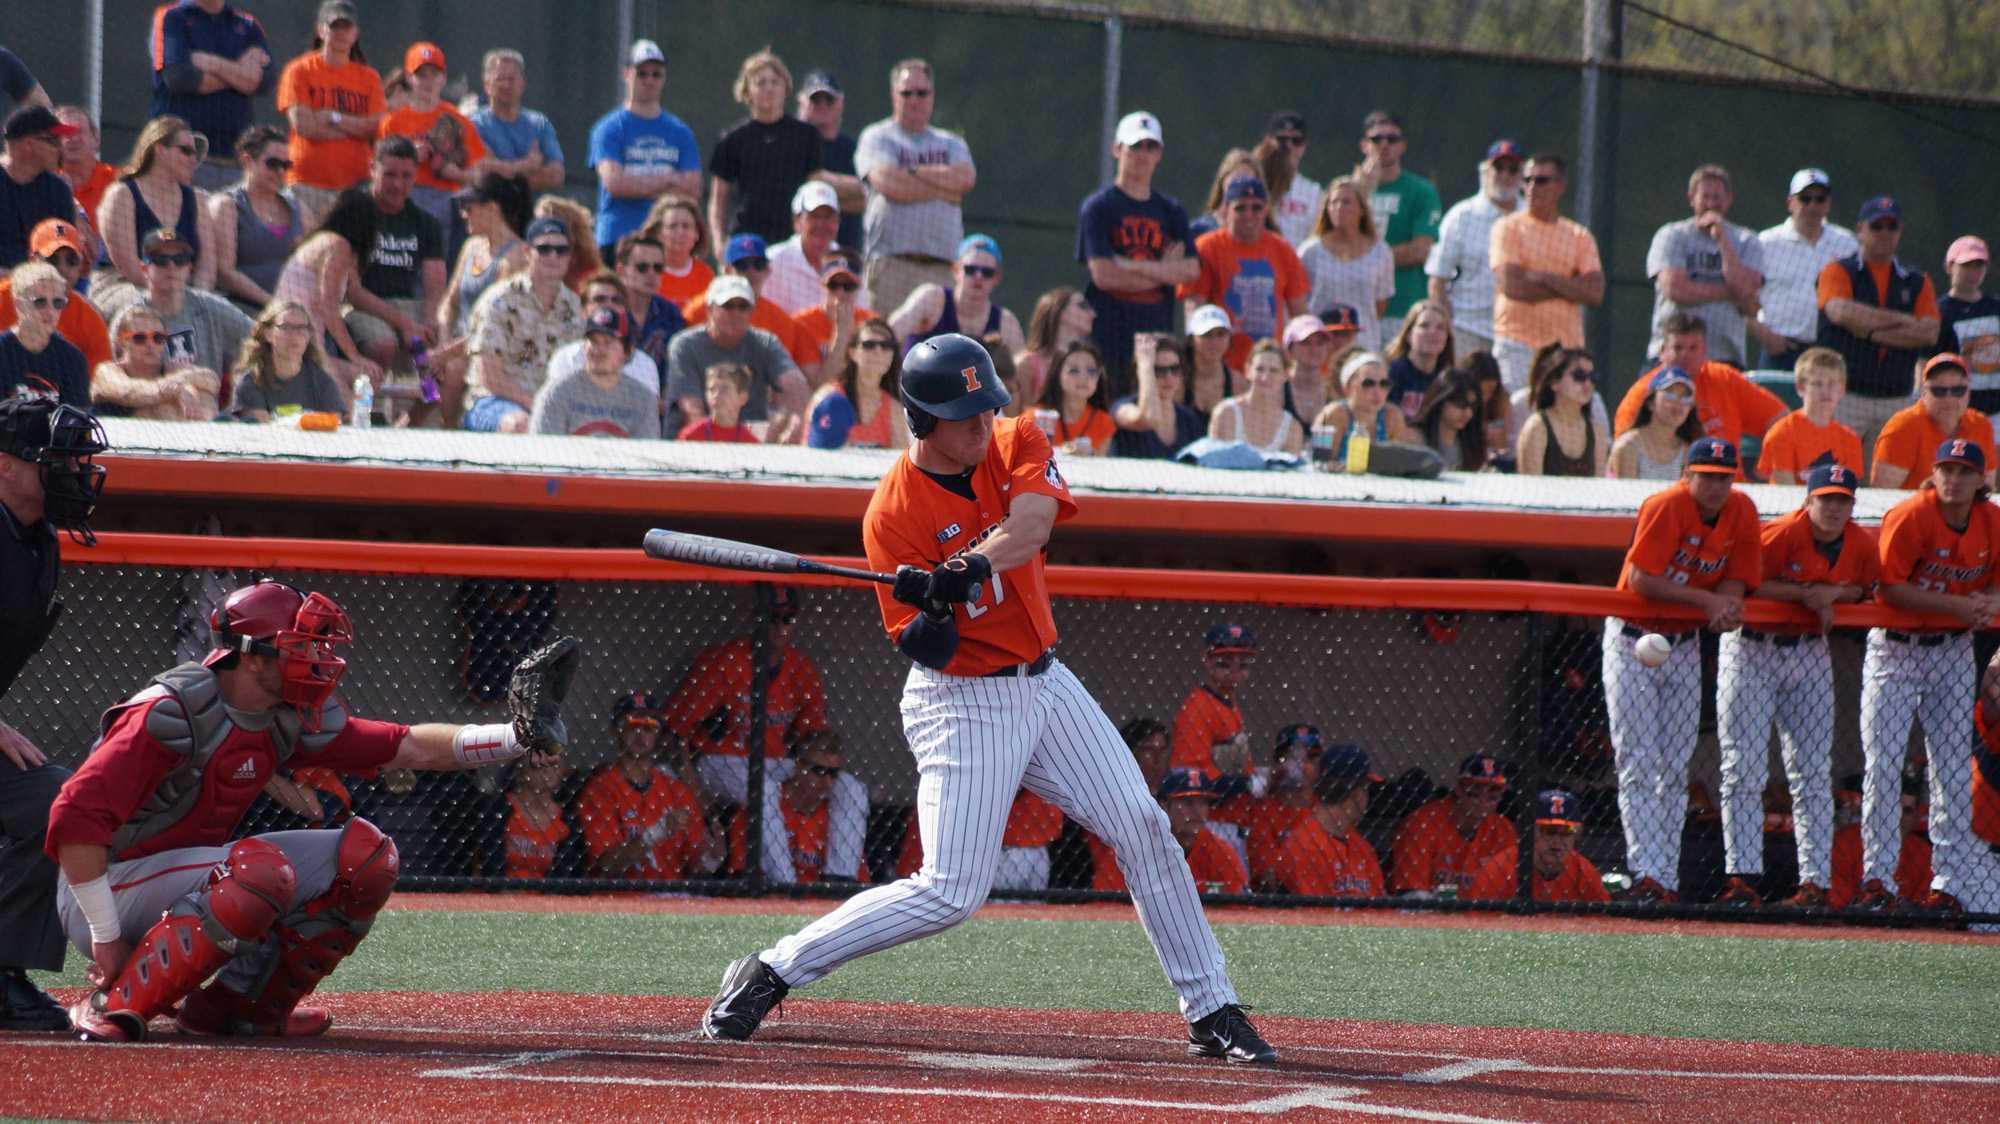 Illinois' Pat Mclnerney (27) takes a swing at the ball during the baseball game v. Indiana at Illinois Field on Saturday, Apr. 18, 2015. Illinois won 6-3.